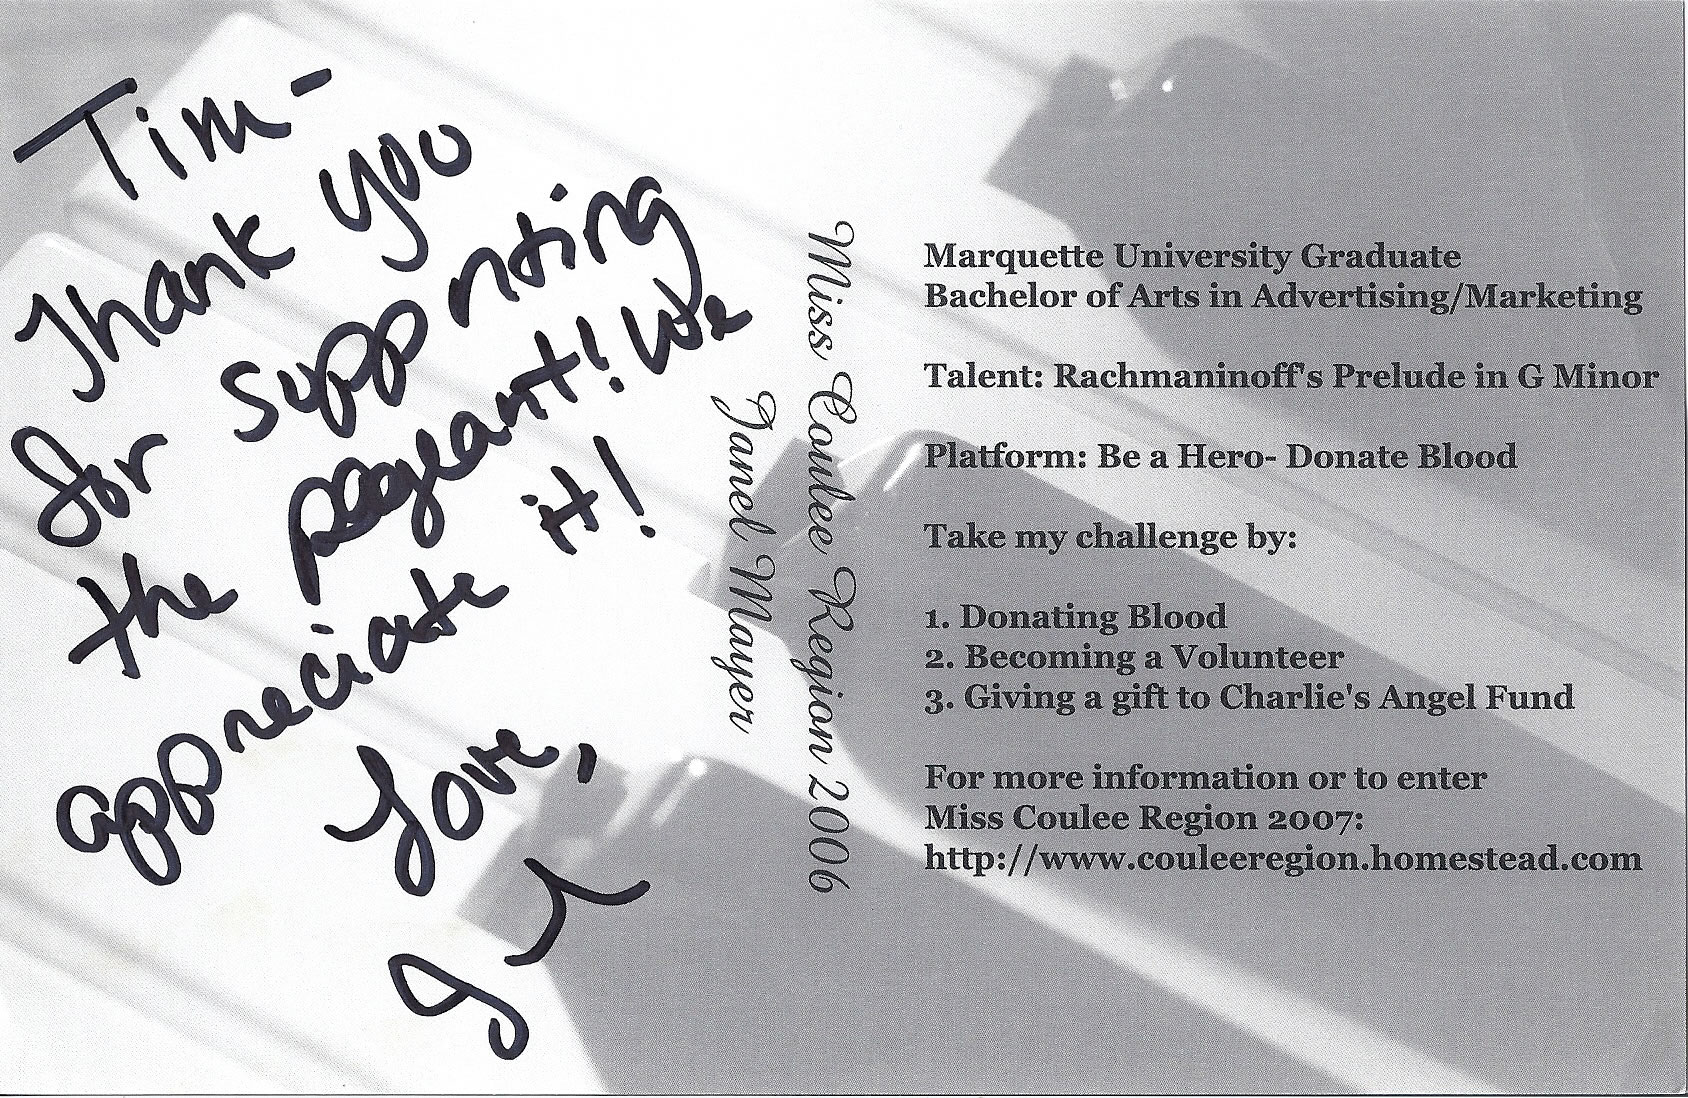 Janel Mayer, Miss Coulee Region autograph